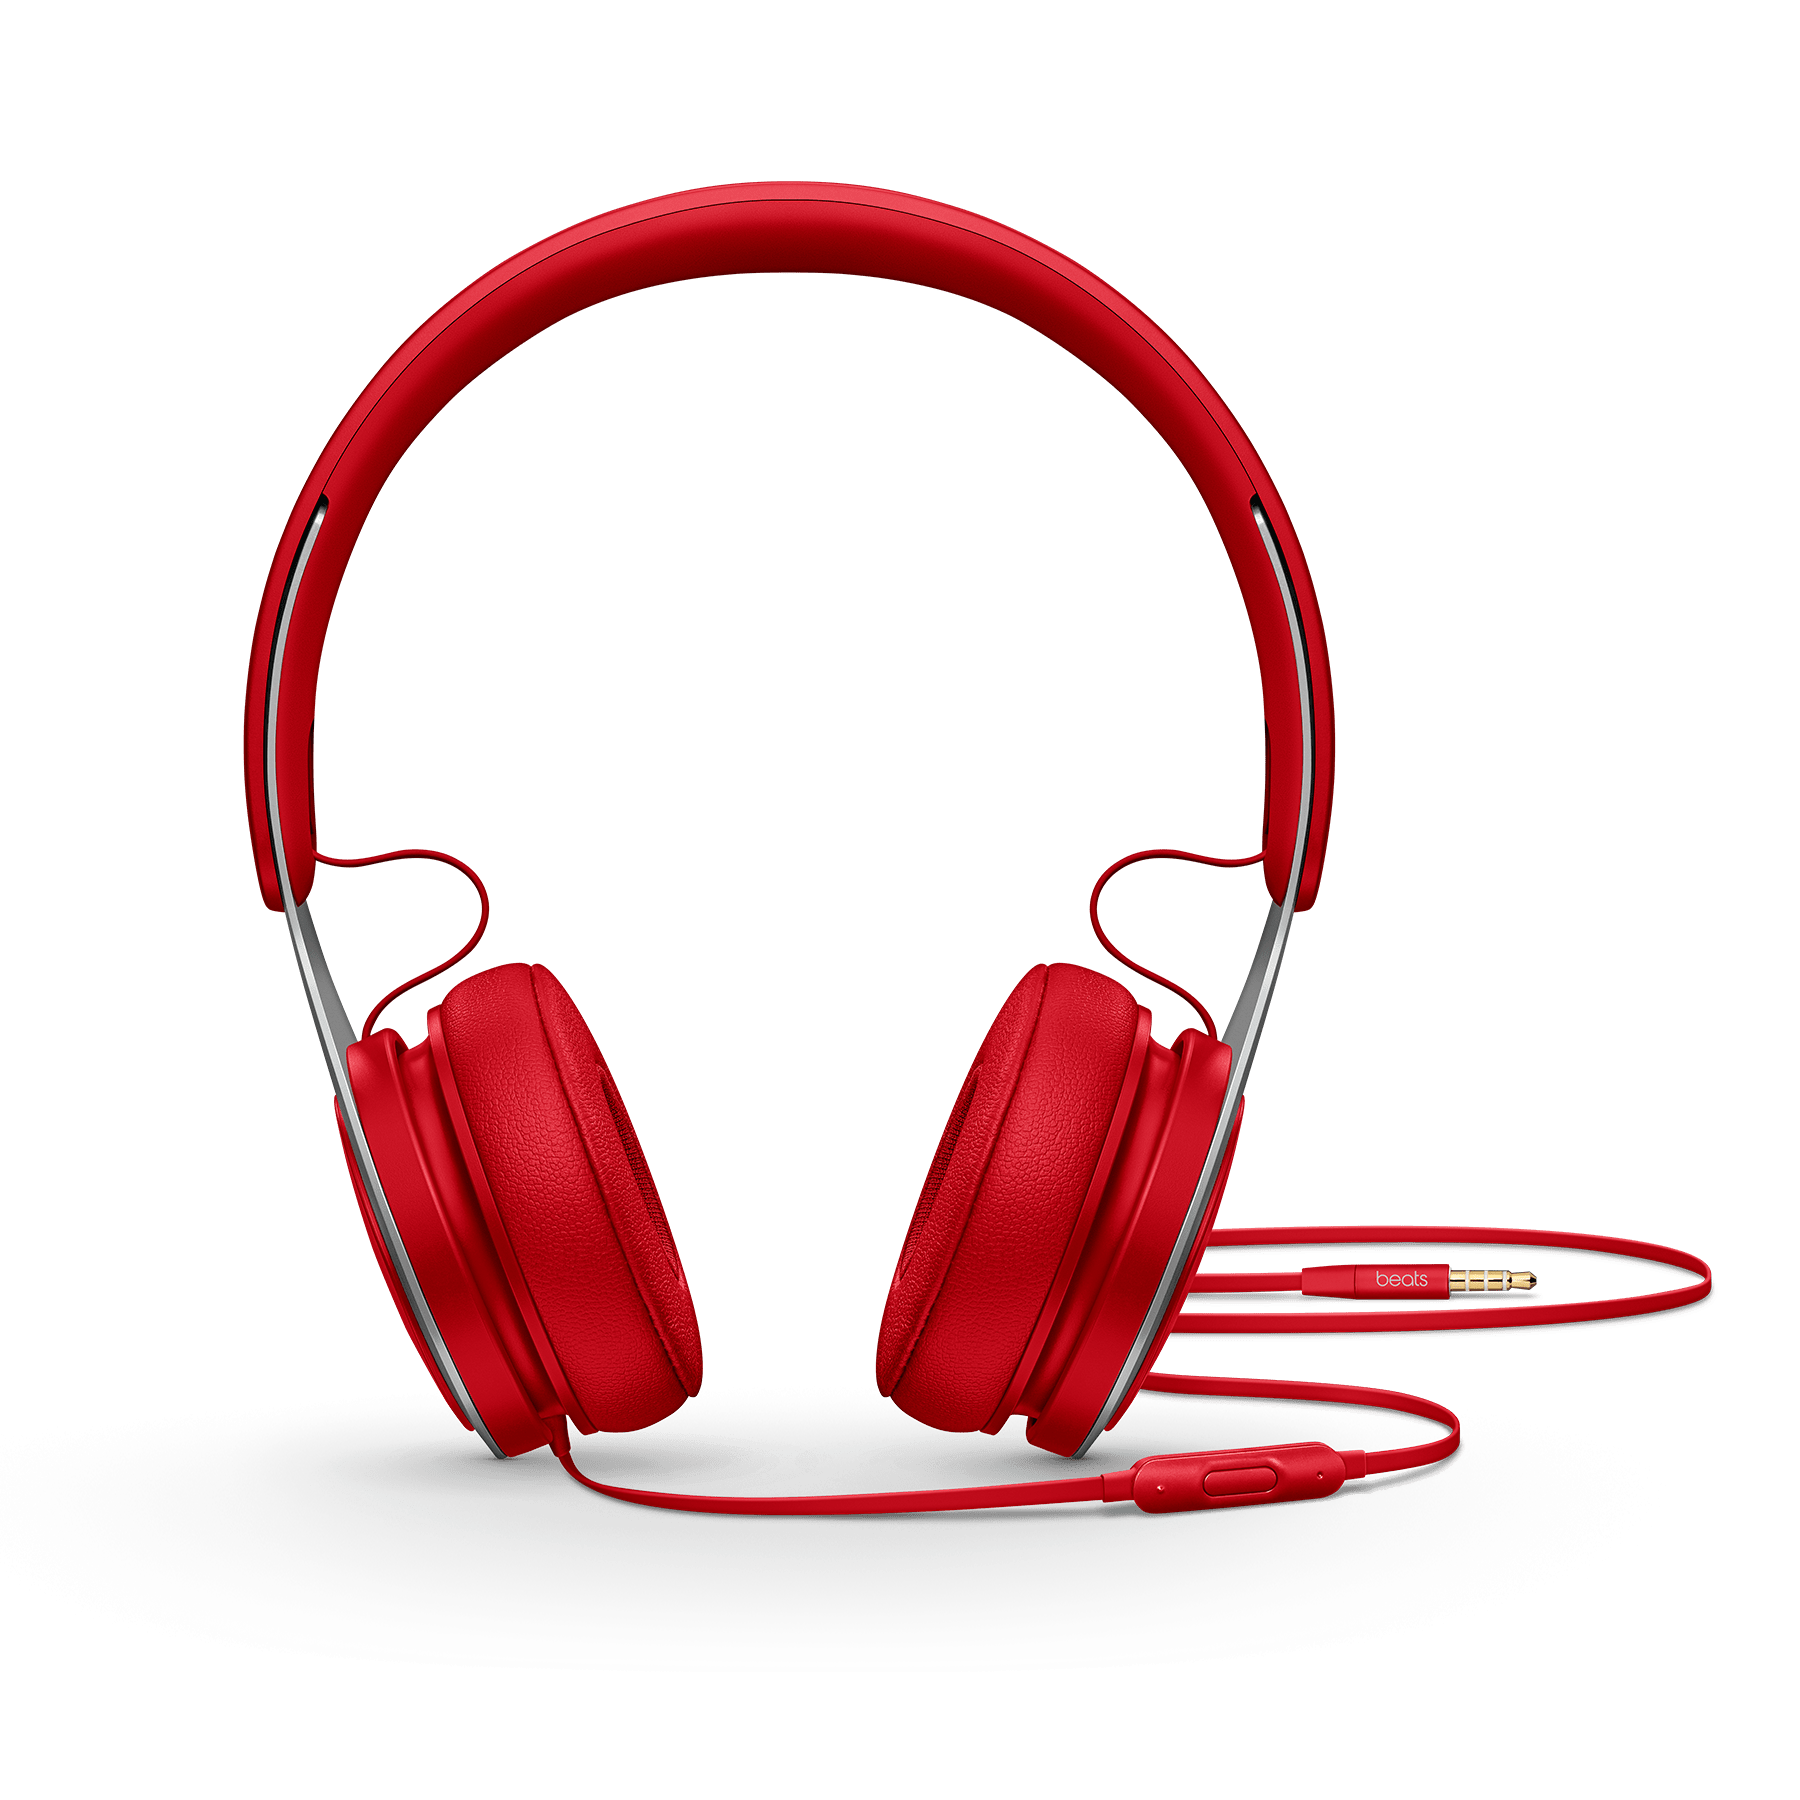 Stage manager cliparts headset png free library Clipart studio microphone headphone, Clipart studio ... png free library